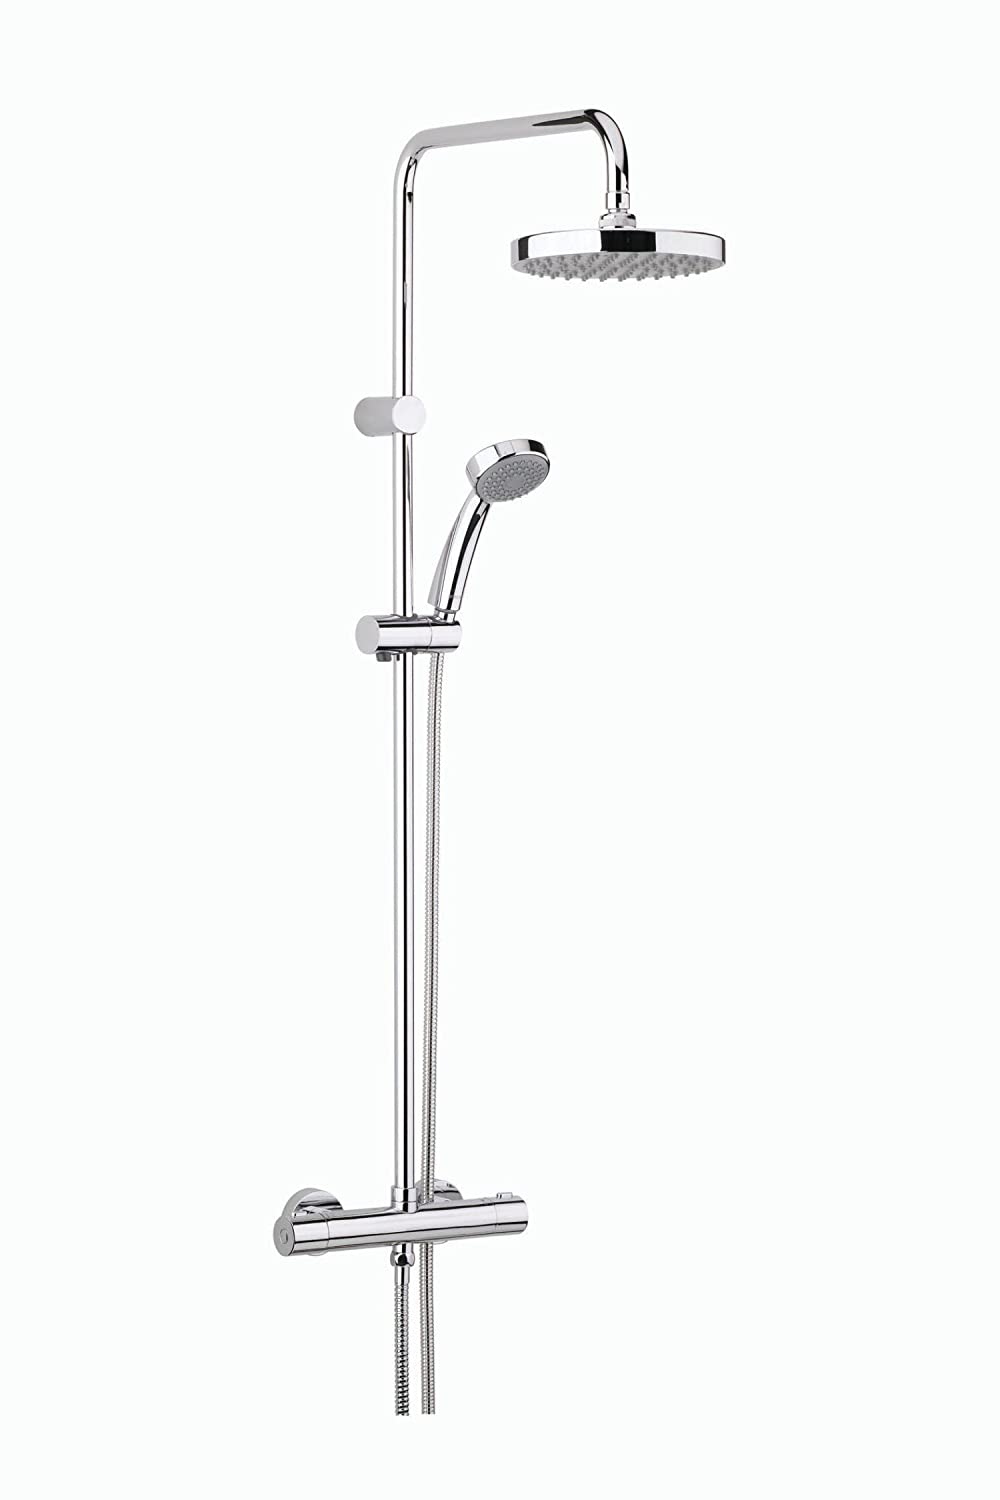 Bristan CR SHXDIVFF C Carre Exposed Fixed Head Bar Shower with Diverter and Kit, Chrome